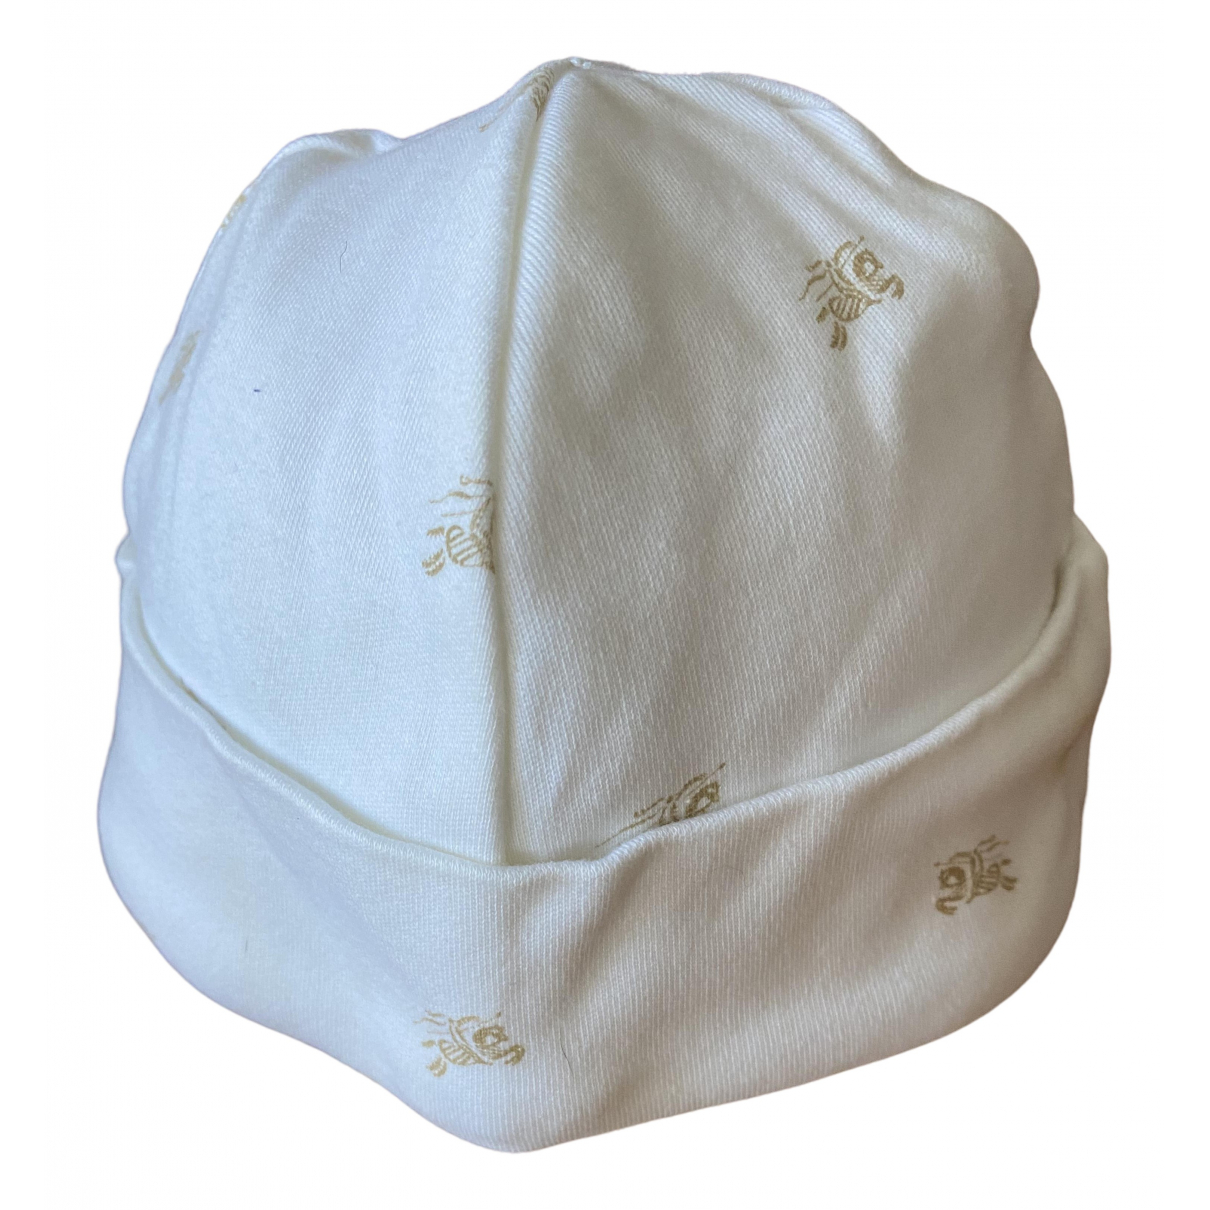 Burberry N White Cotton hat & Gloves for Kids N